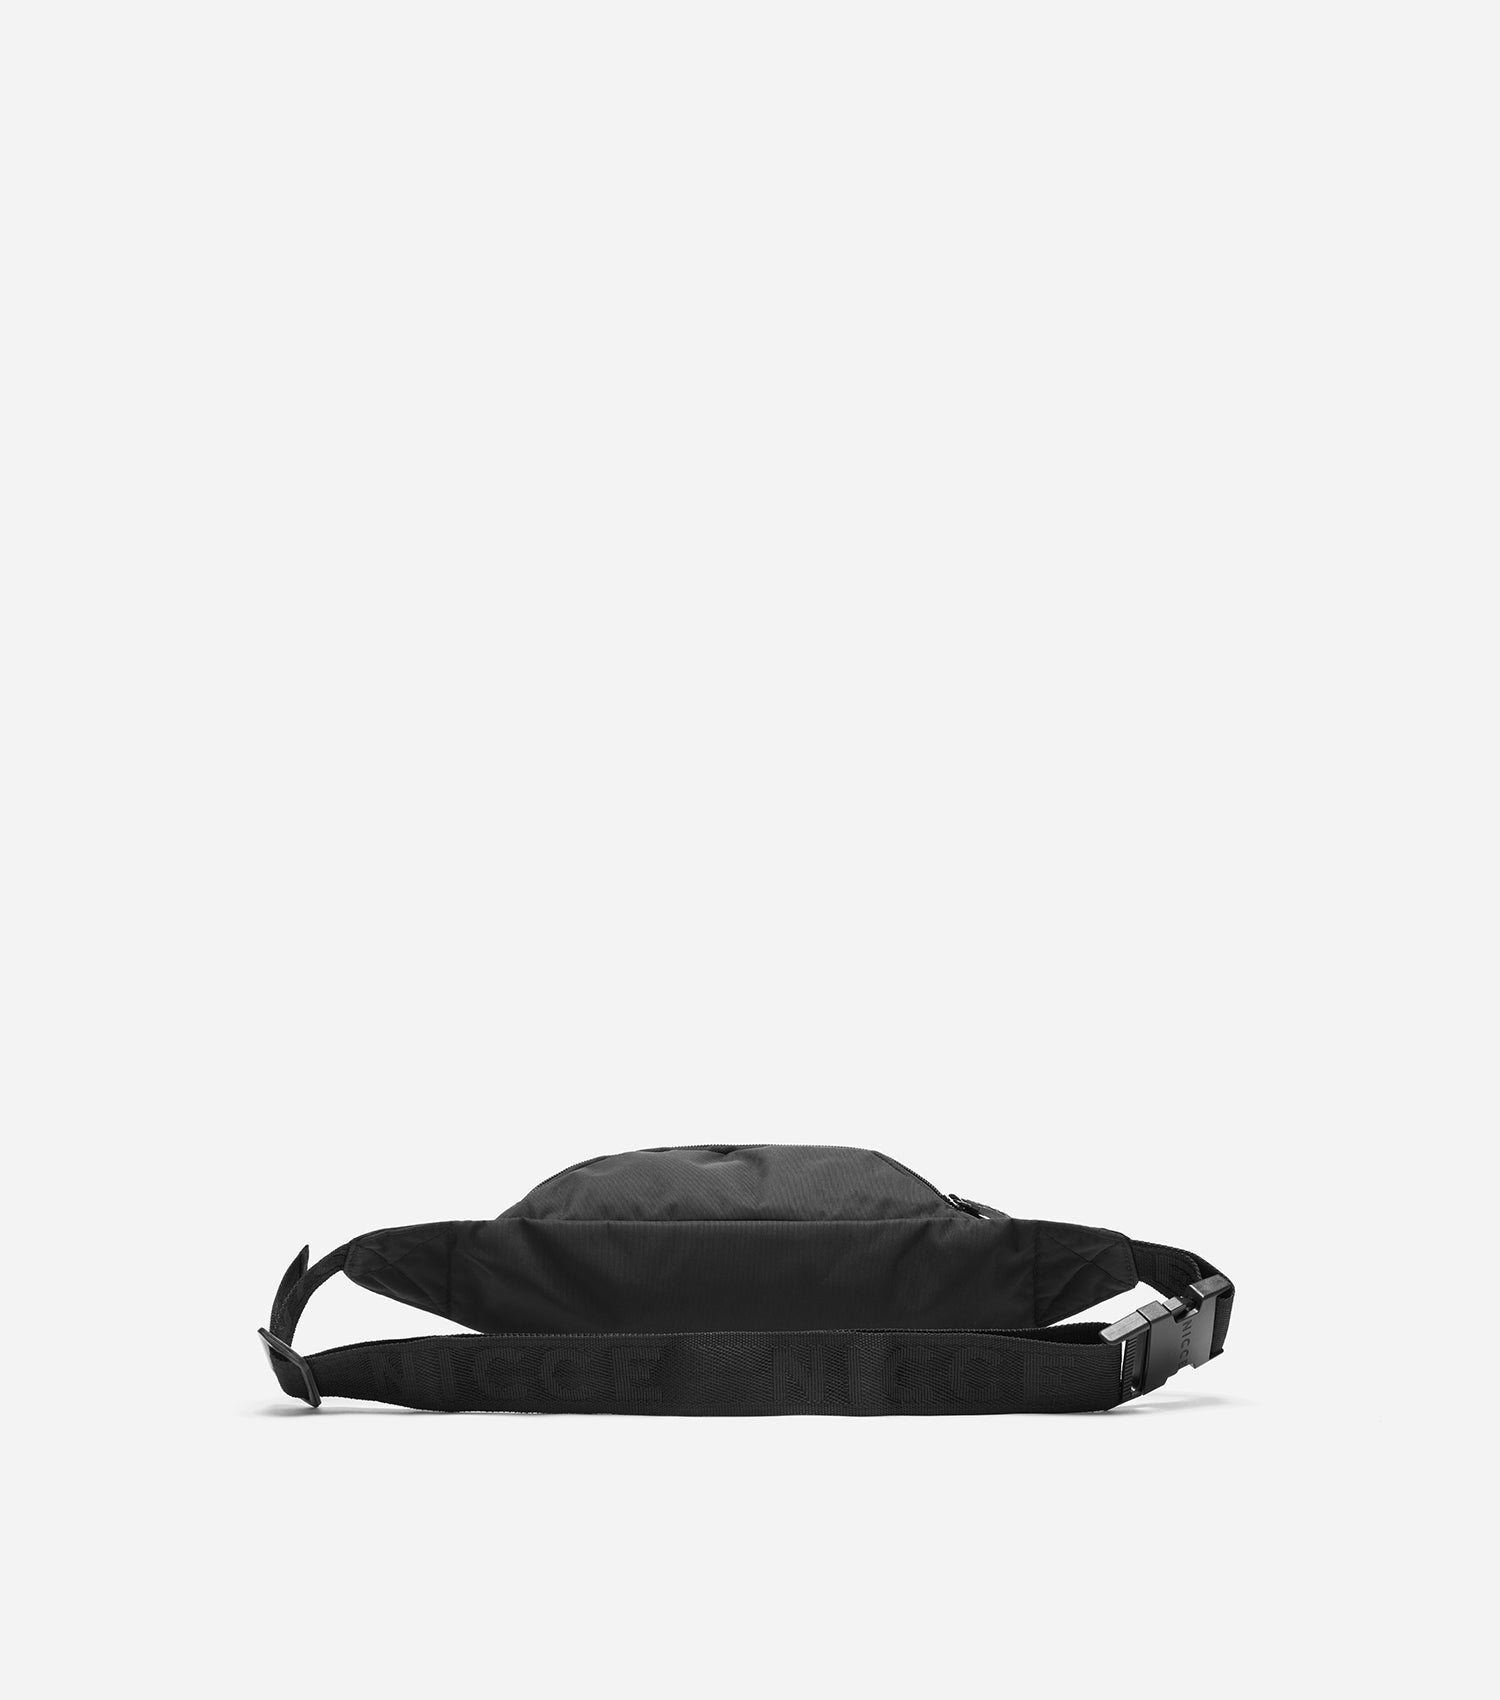 NICCE Keir Bum Bag | Black, Bags